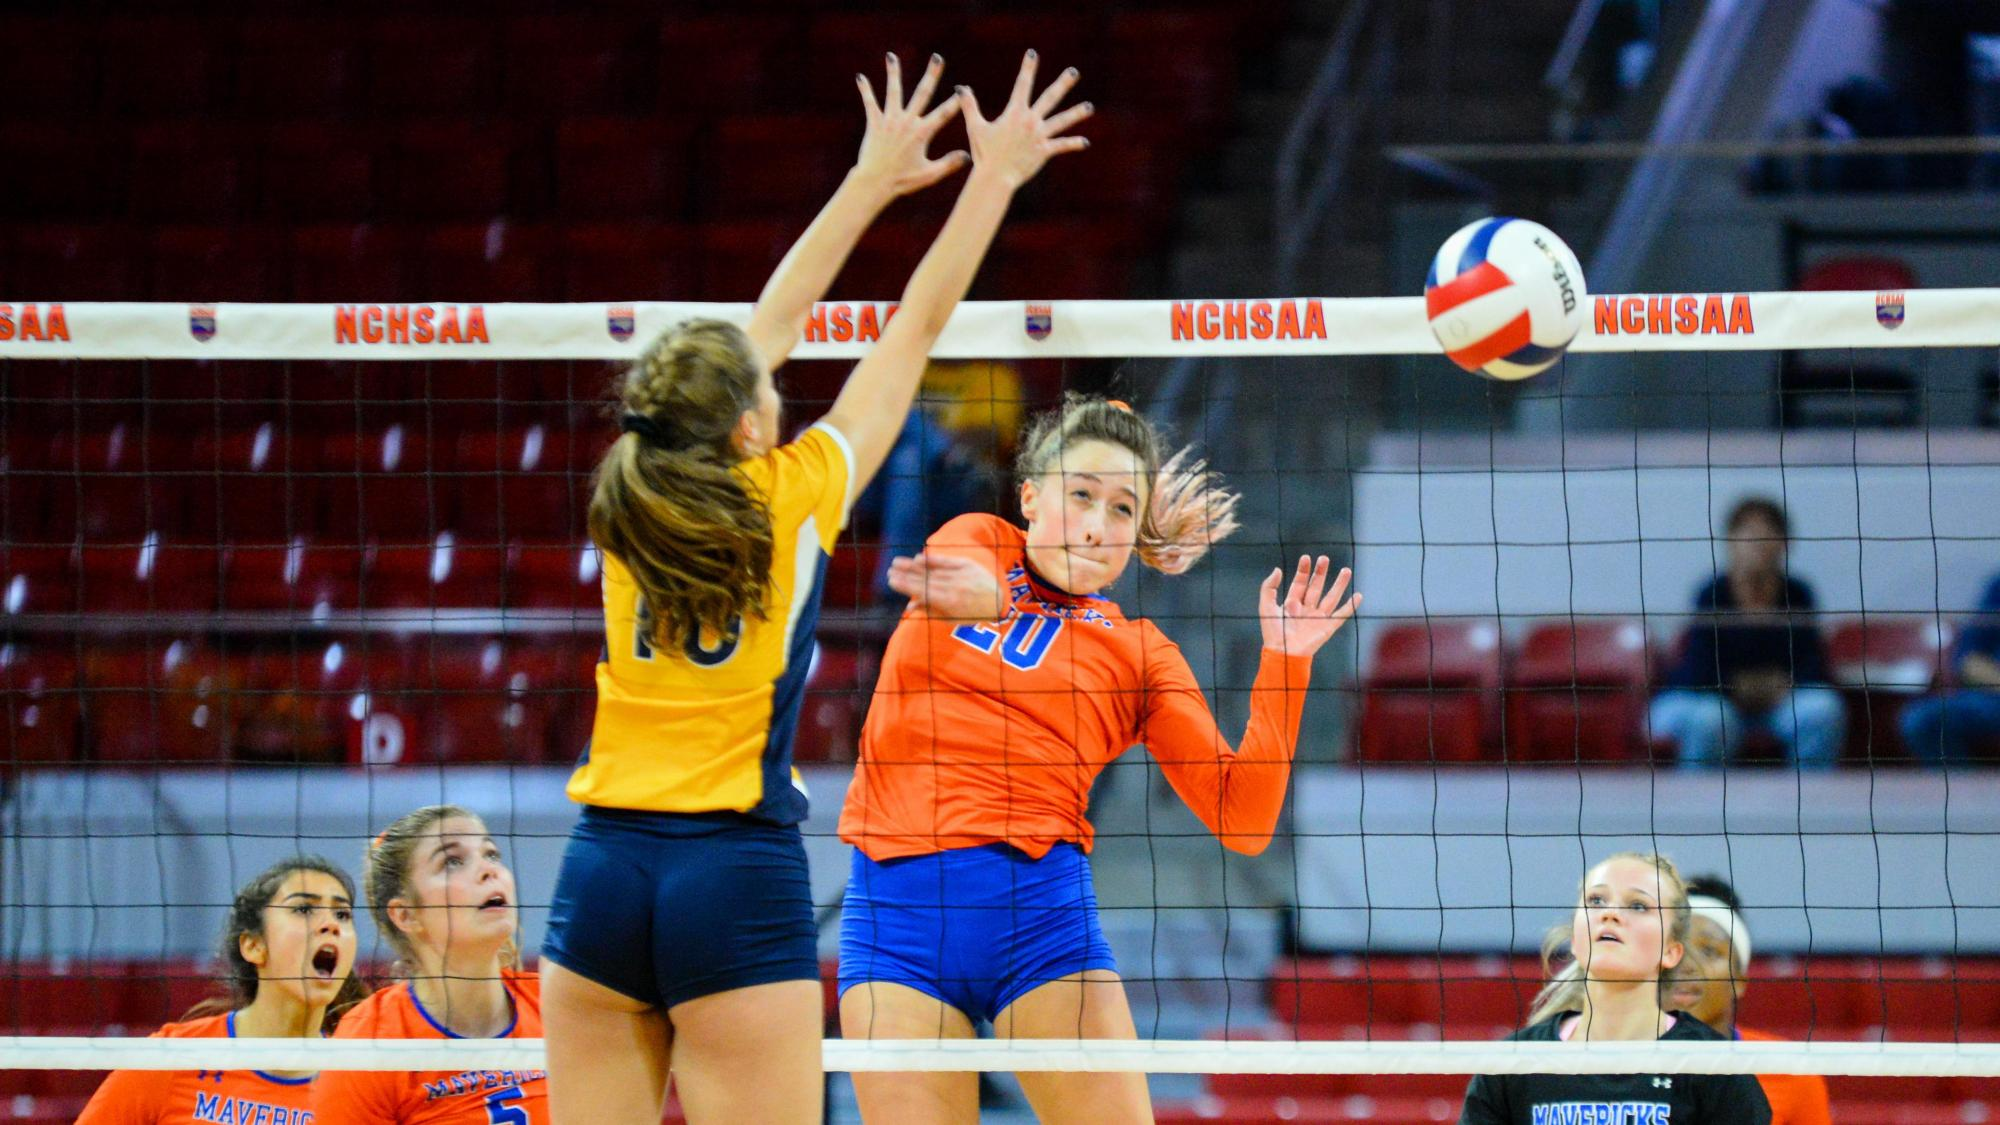 New Volleyball Rules Changes Impact Uniforms Prematch Protocol